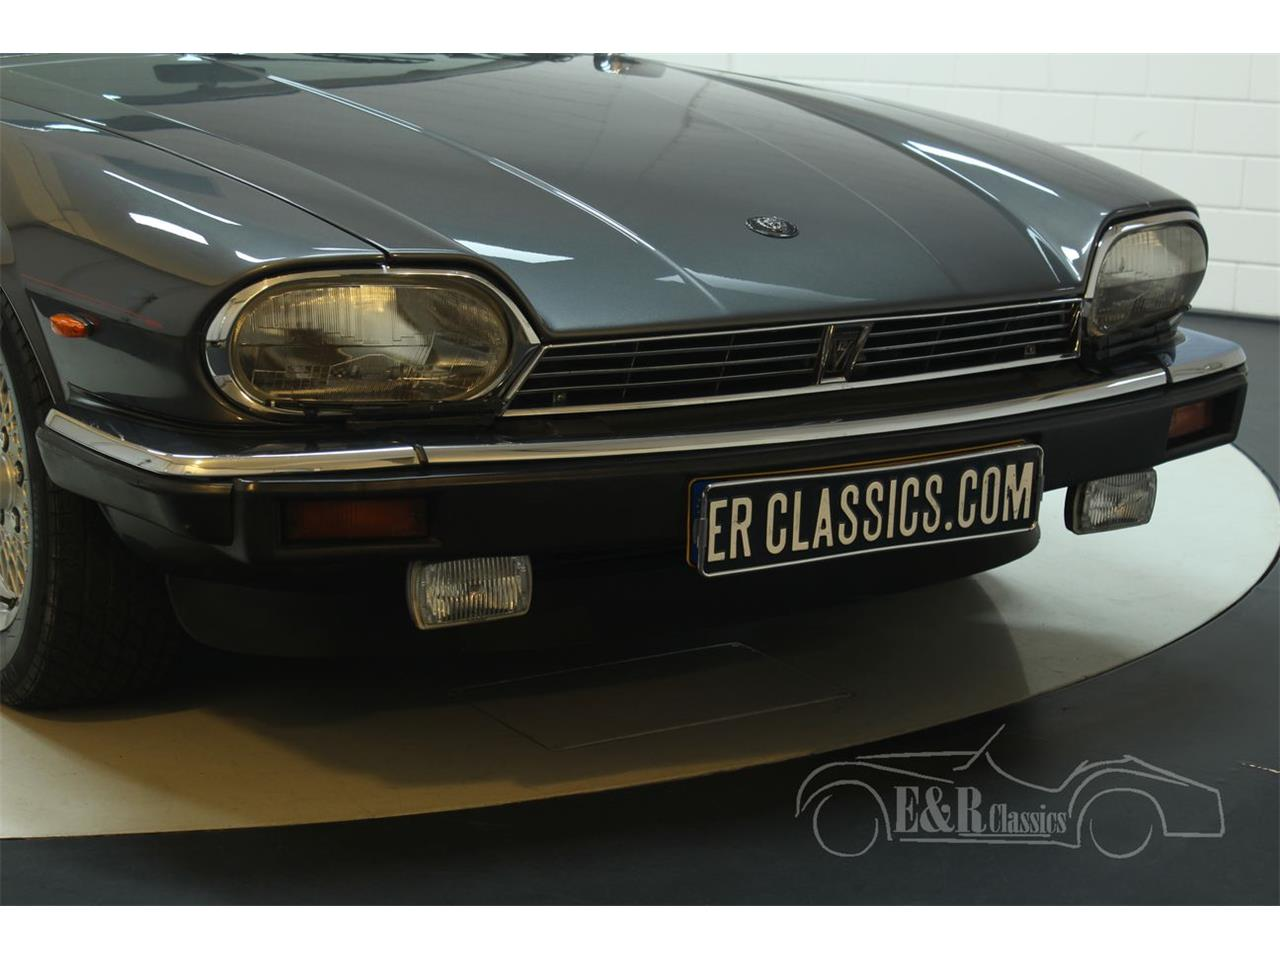 Large Picture of 1988 Jaguar XJS located in - Keine Angabe - - $30,500.00 - PGSZ